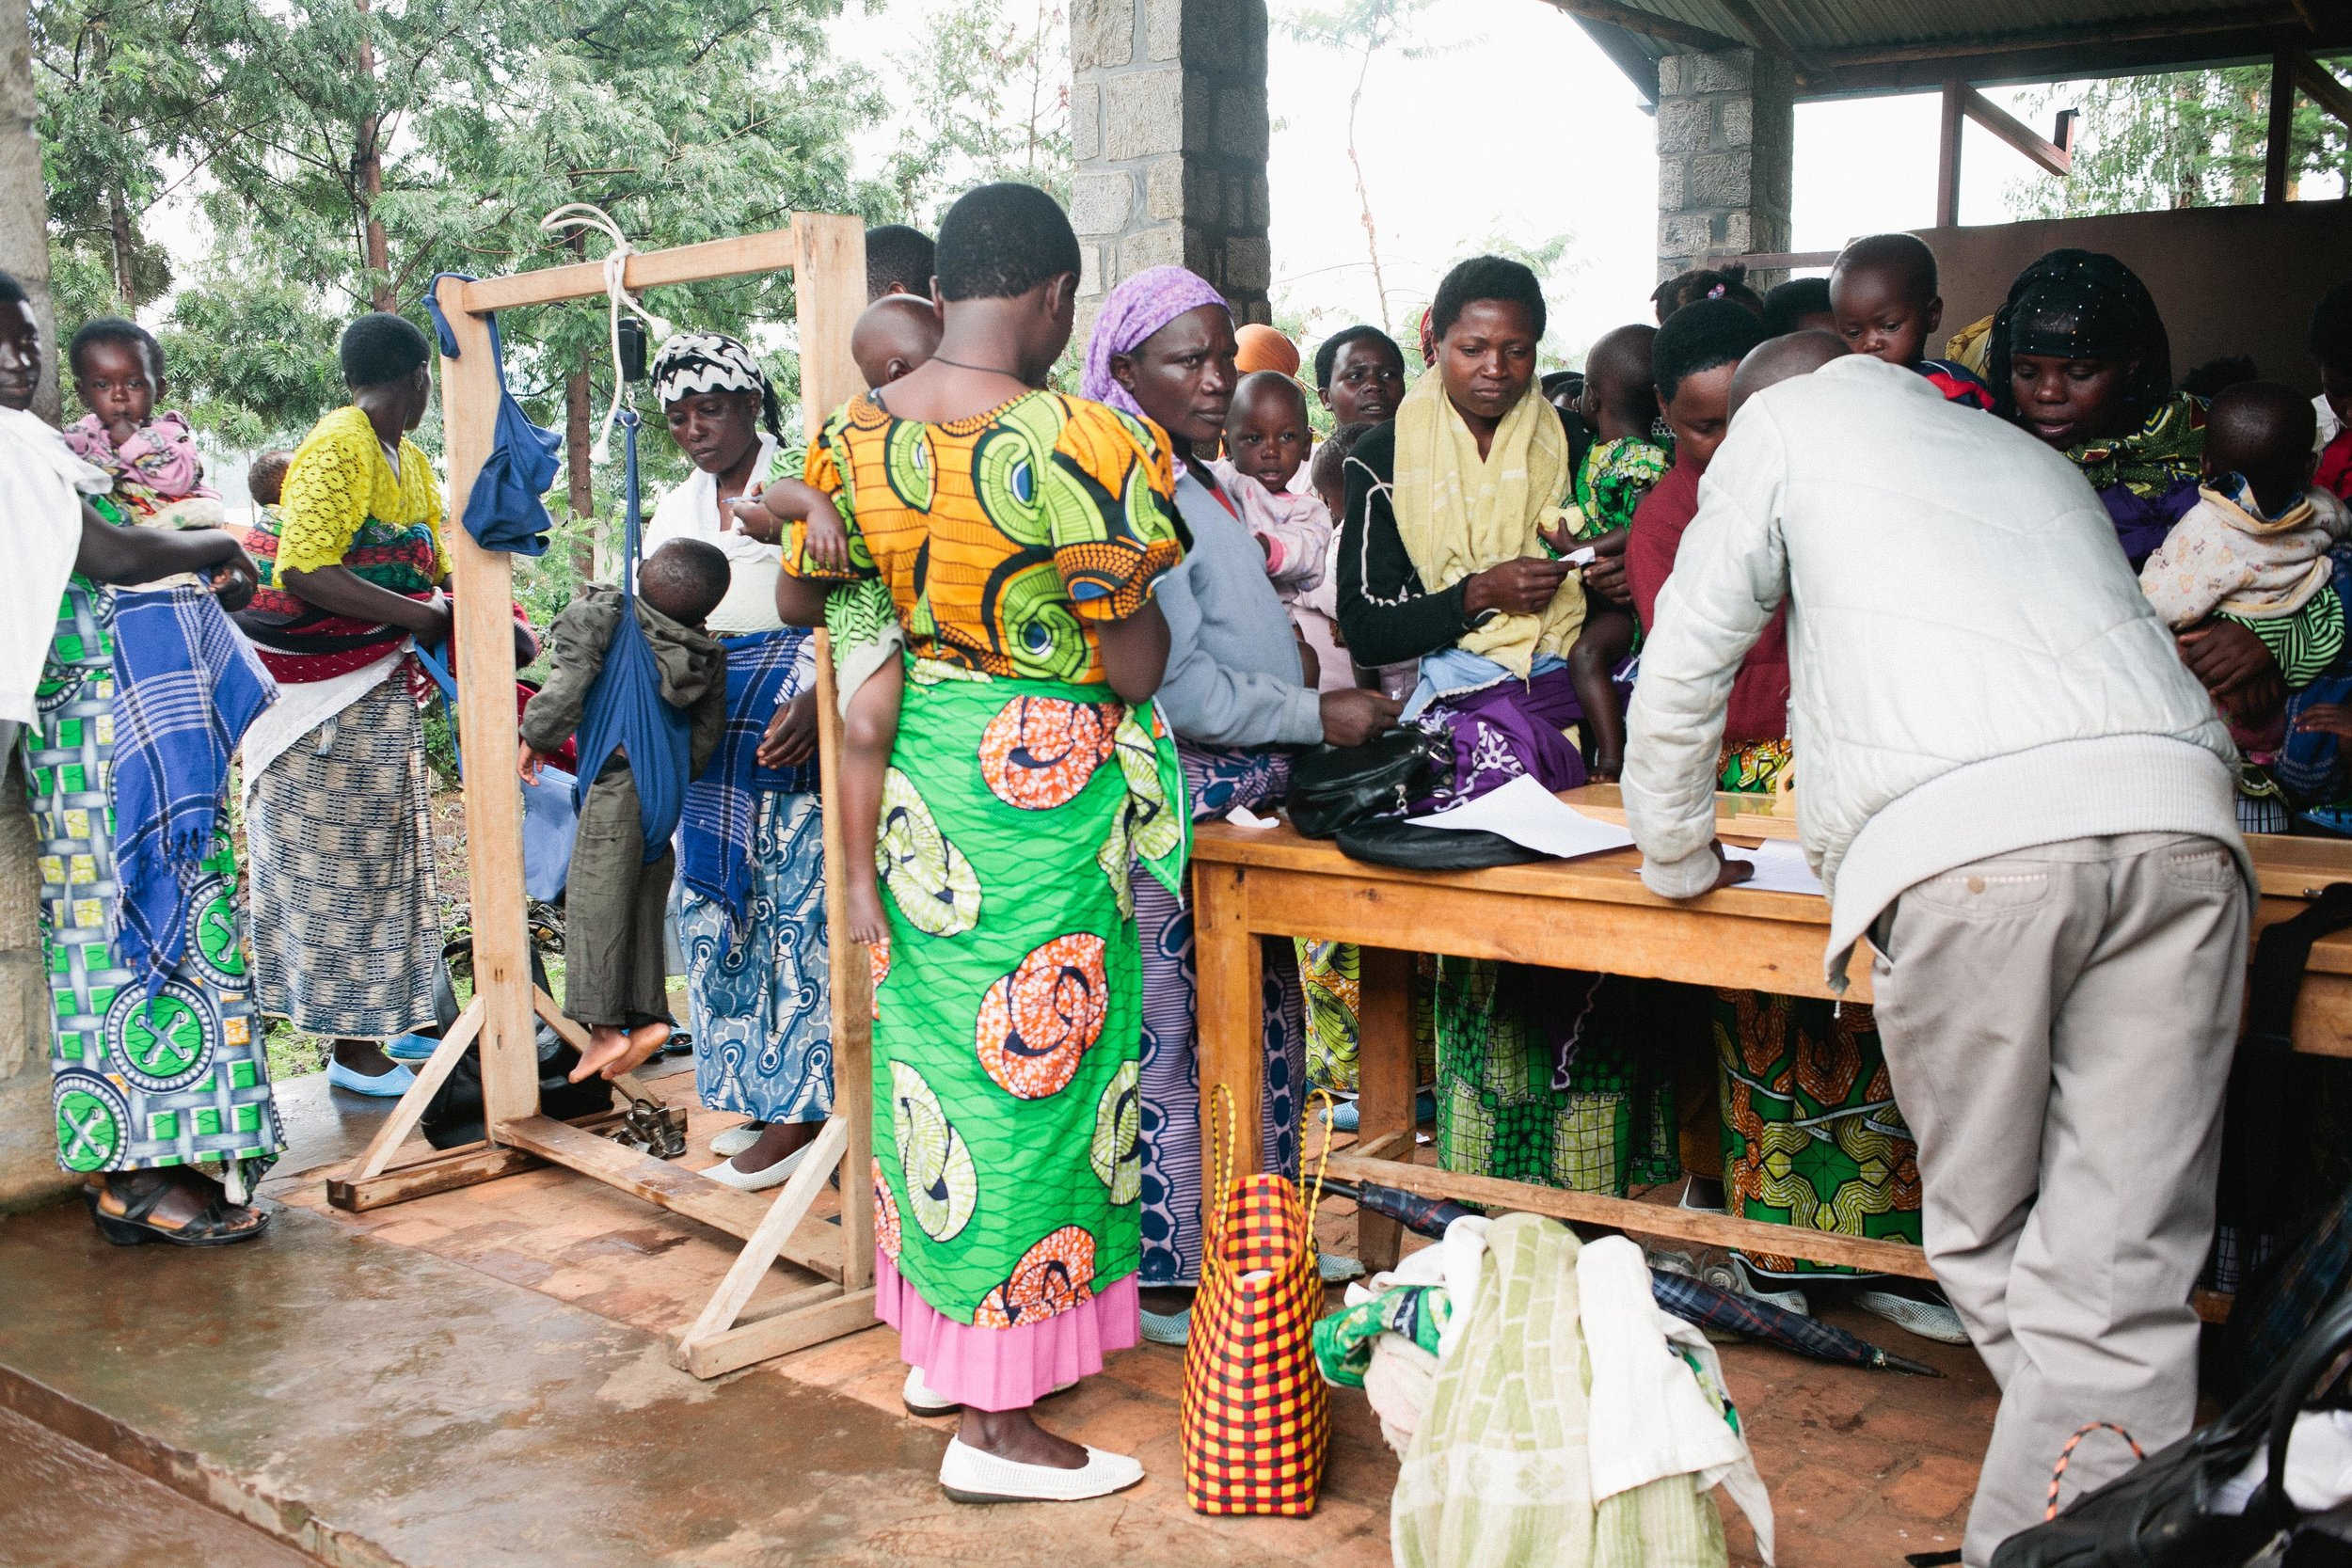 Caregivers attend a growth monitoring campaign